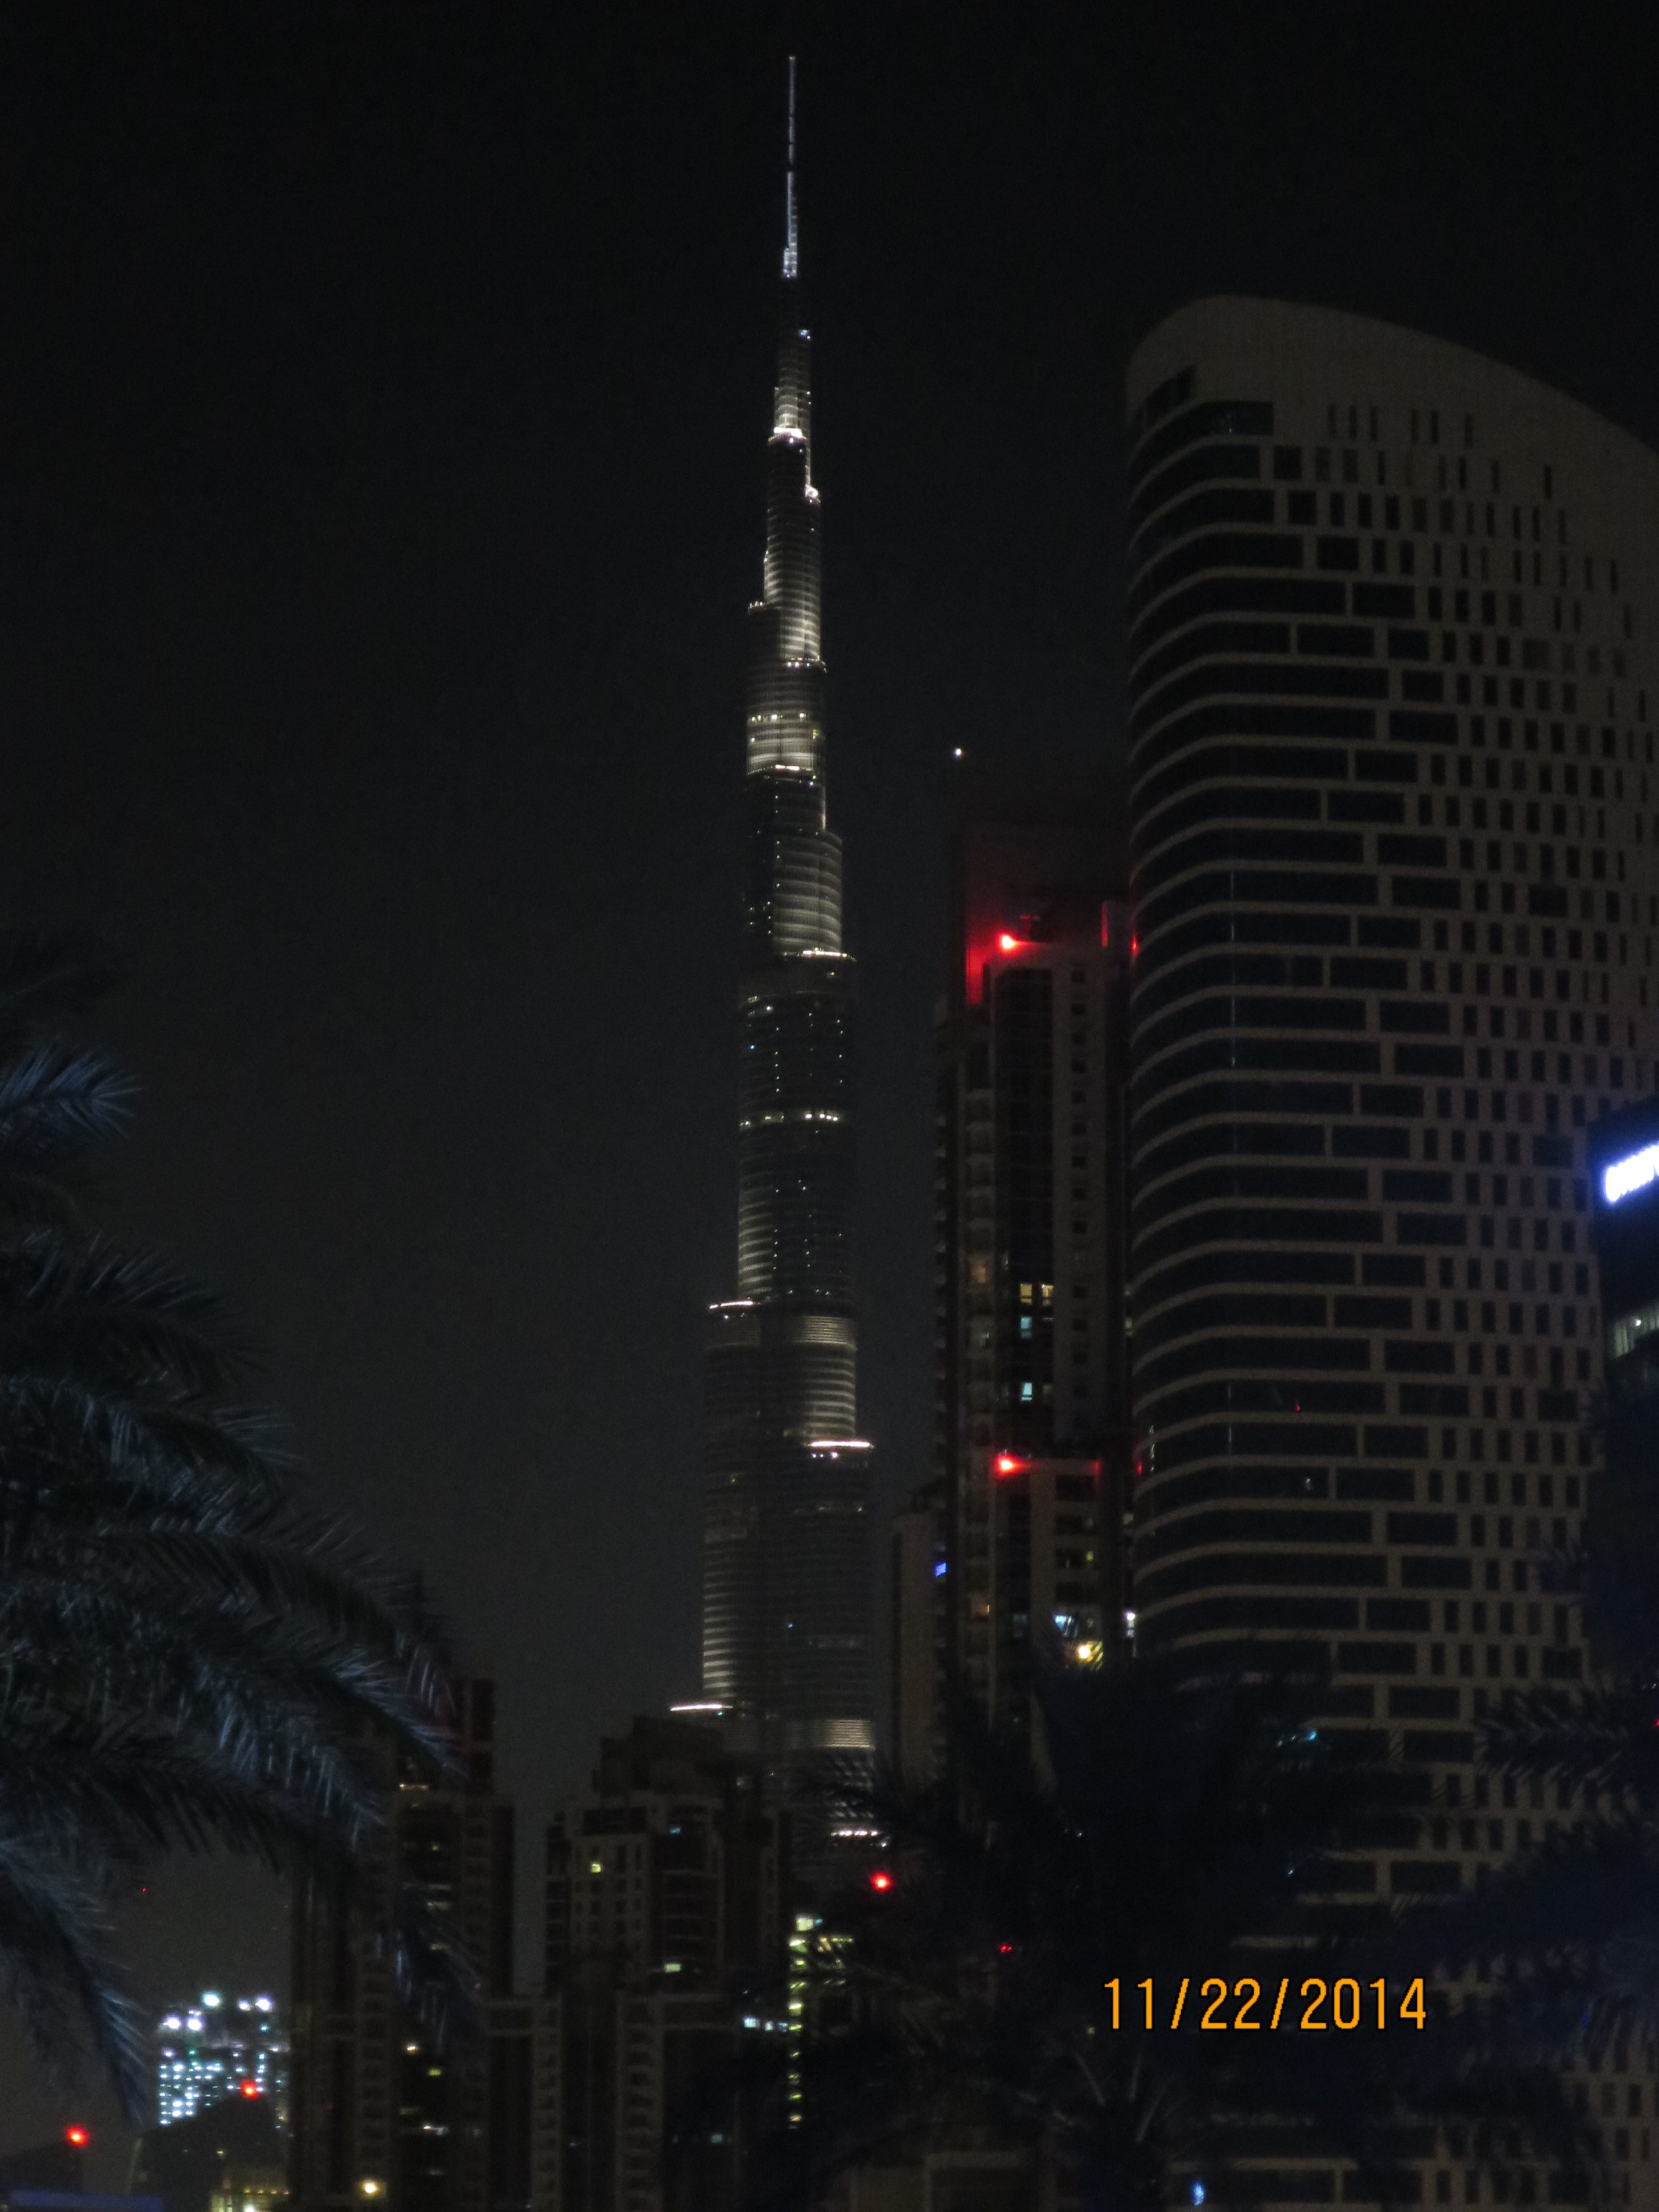 night view of the Burj Khalifa from the hotel